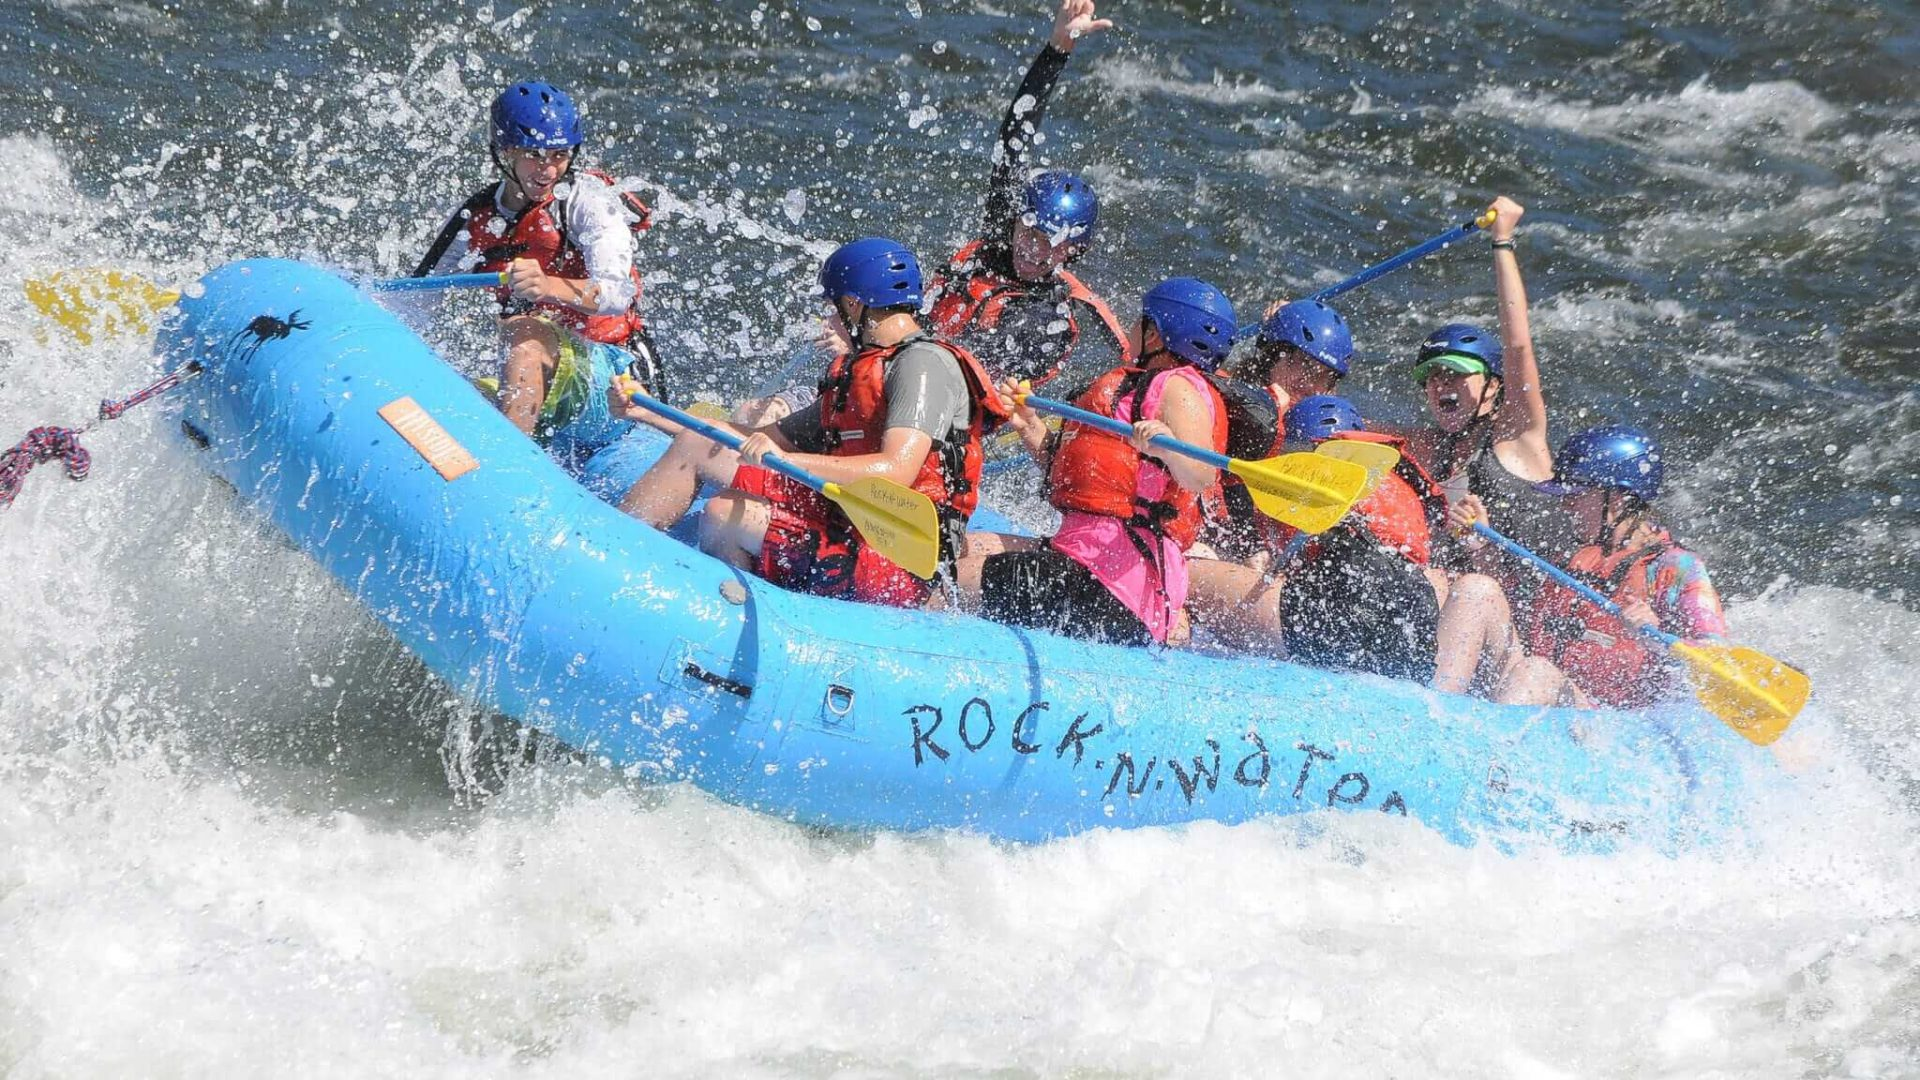 white-water-rafting-side-rock-n-water